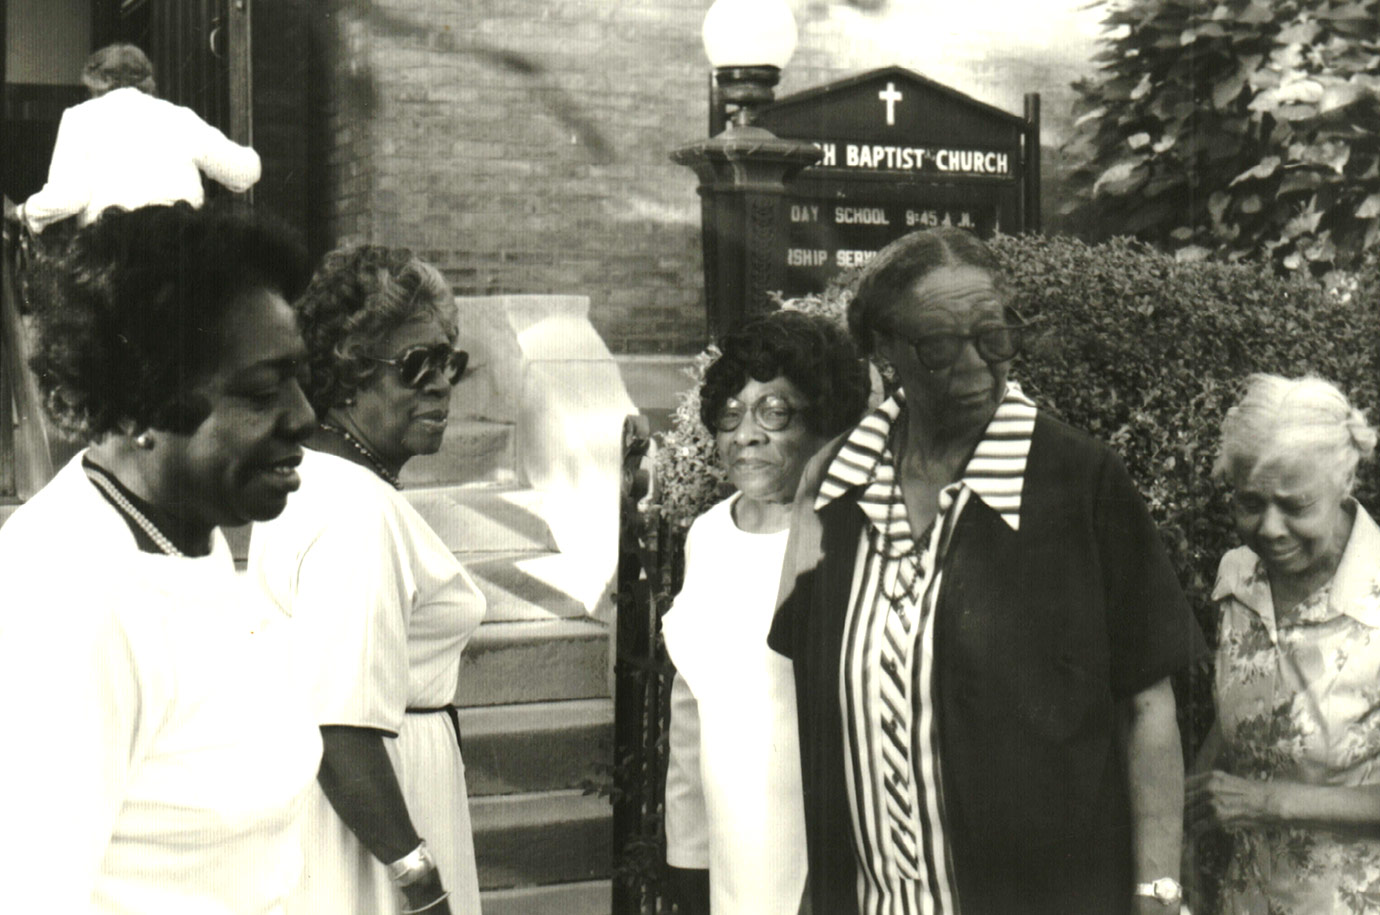 The Prison Public Memory Project joins Shiloh Baptist Church in celebrating its 100th anniversary